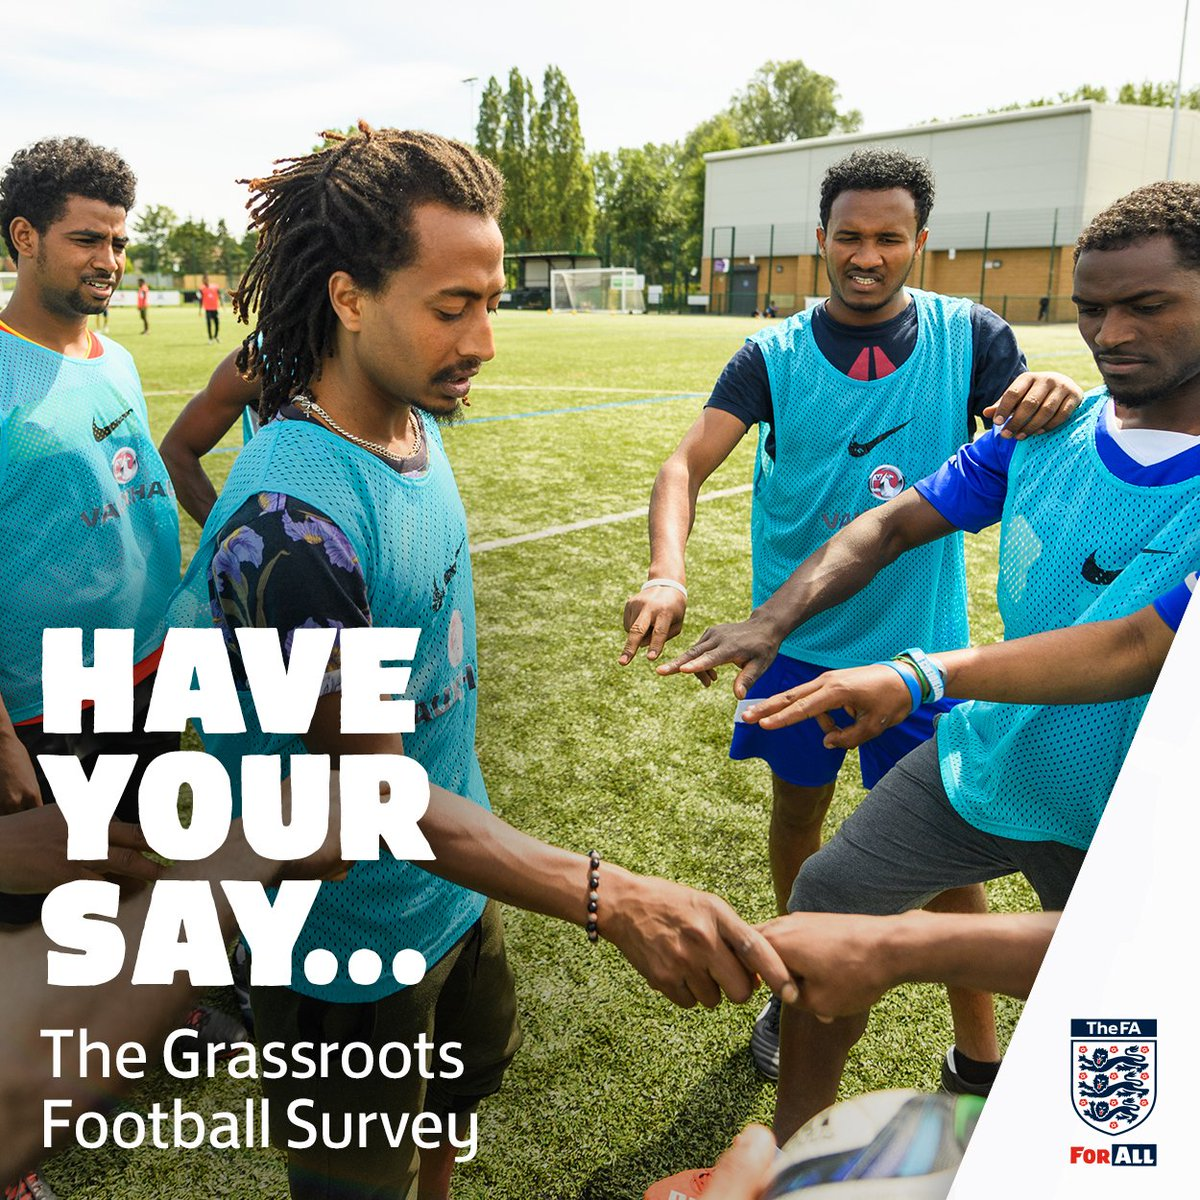 Its time to #HaveYourSay! The @FA Grassroots Football Survey is back for 2019 and we want to hear from you! ✍💻👉️️ bit.ly/GRFSSurvey